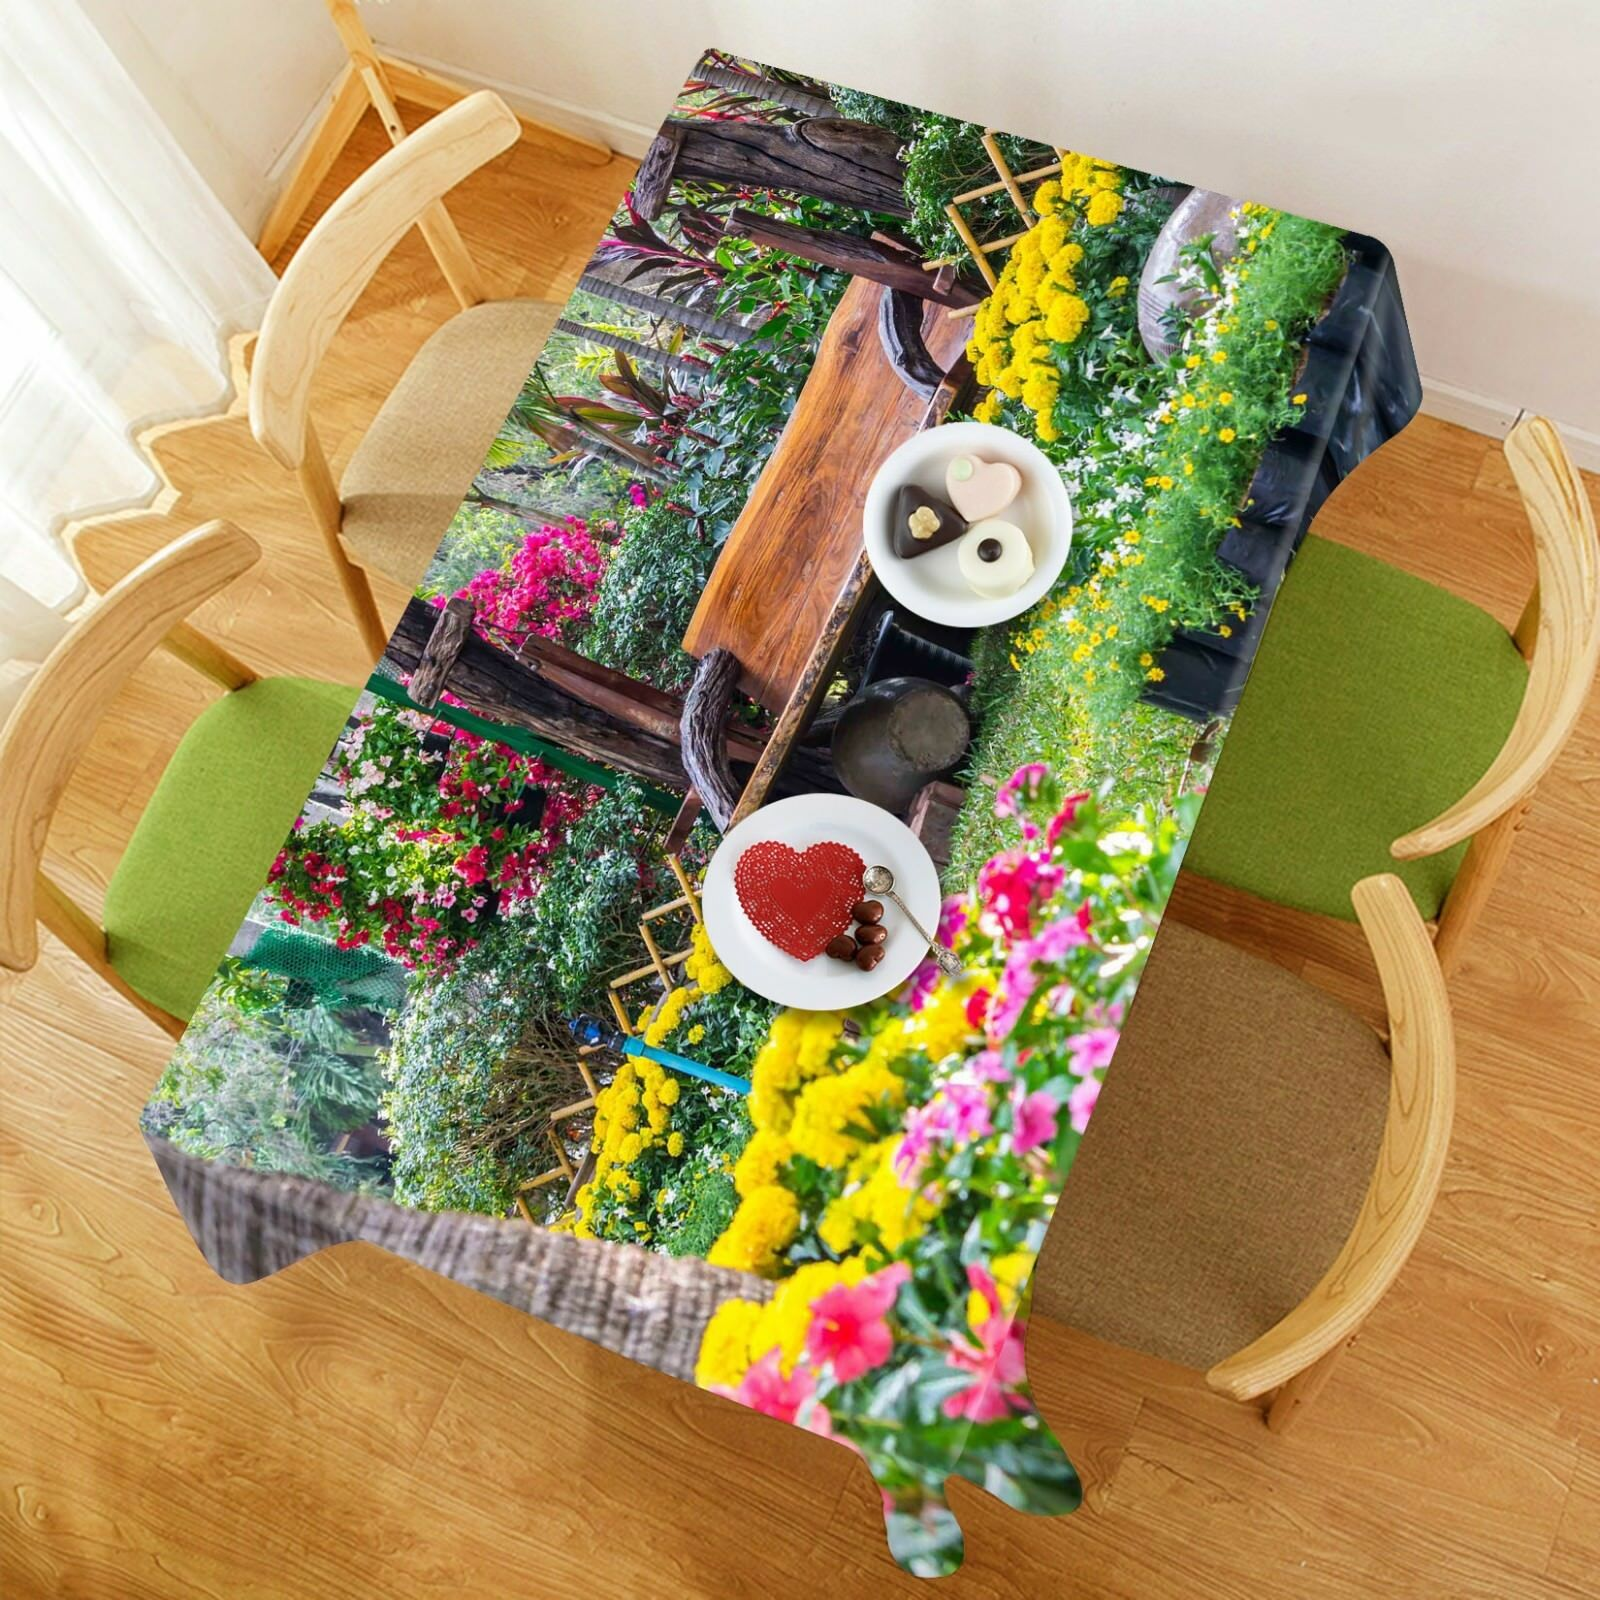 3D Flowers Lawn 06 Tablecloth Table Cover Cloth Birthday Party Event AJ Jenny